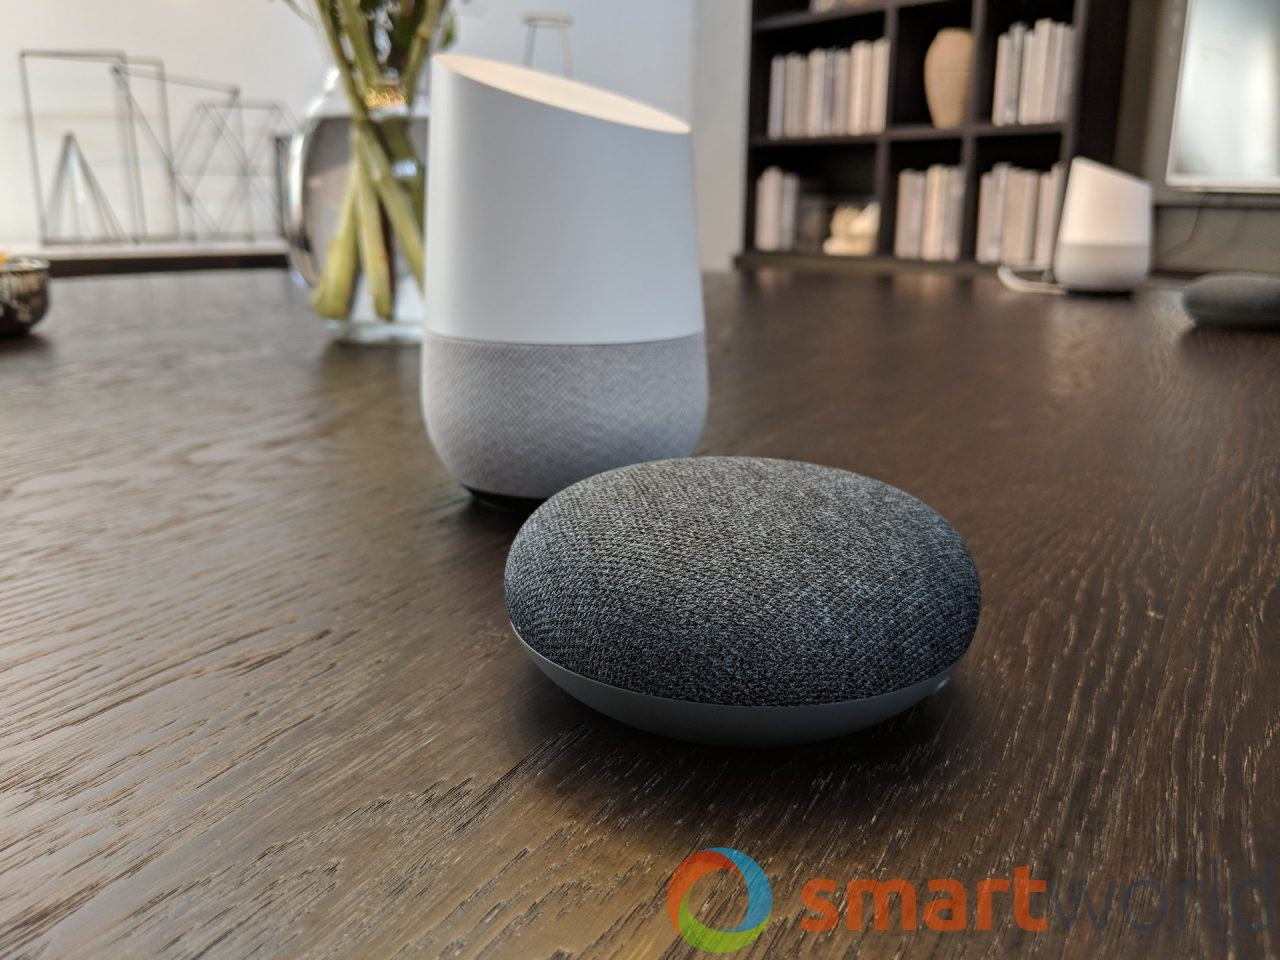 a google assistant la palma di migliore assistente vocale ma cortana lo bracca alexa si. Black Bedroom Furniture Sets. Home Design Ideas